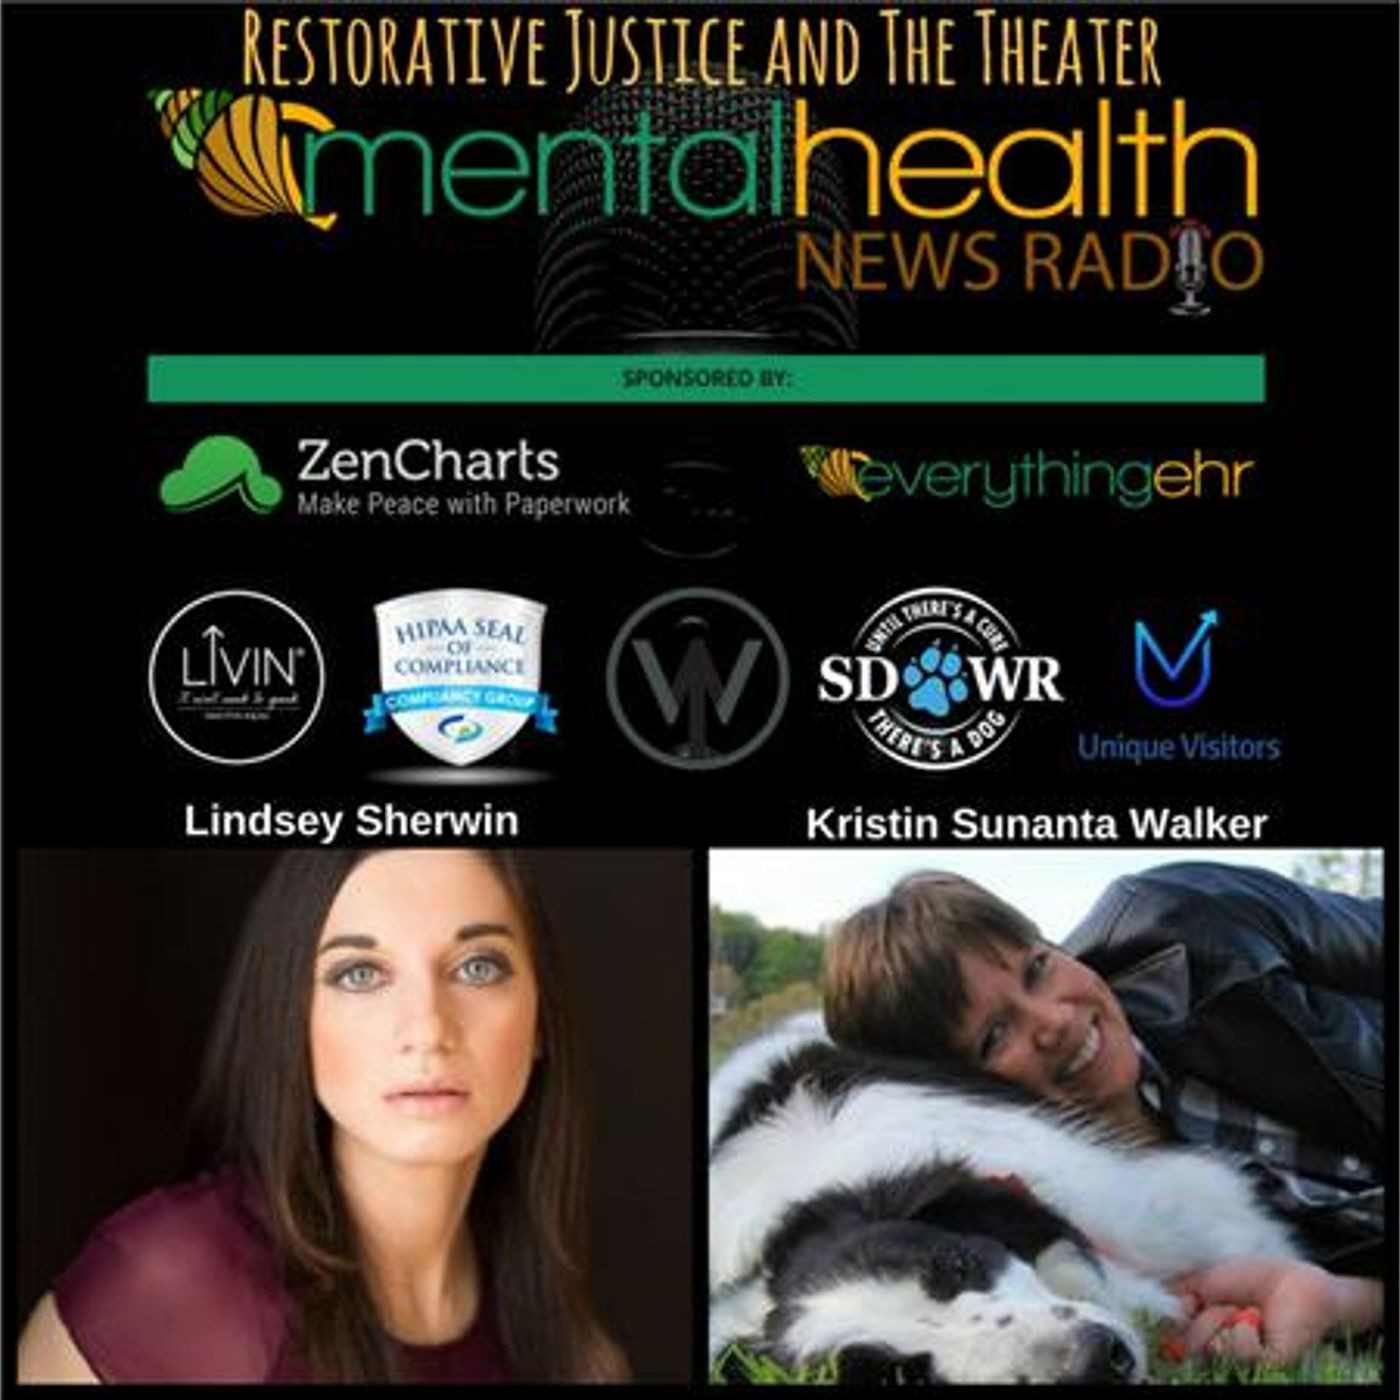 Mental Health News Radio - Restorative Justice and the Theater with Lindsey Sherwin